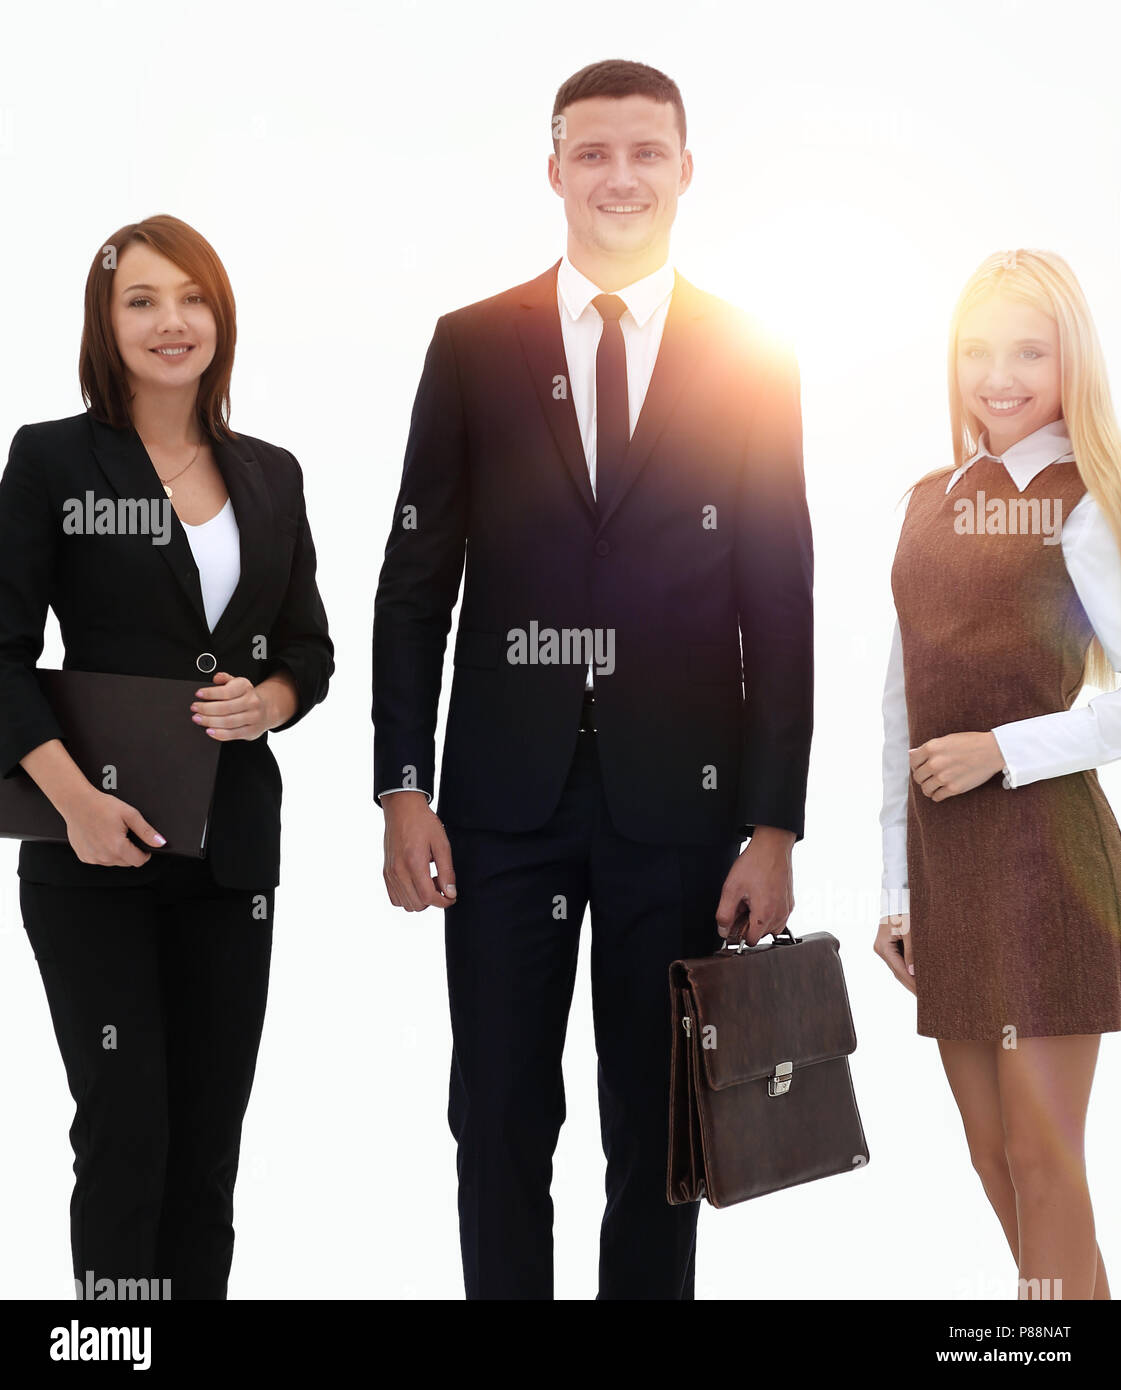 portrait in full growth. professional business team. - Stock Image